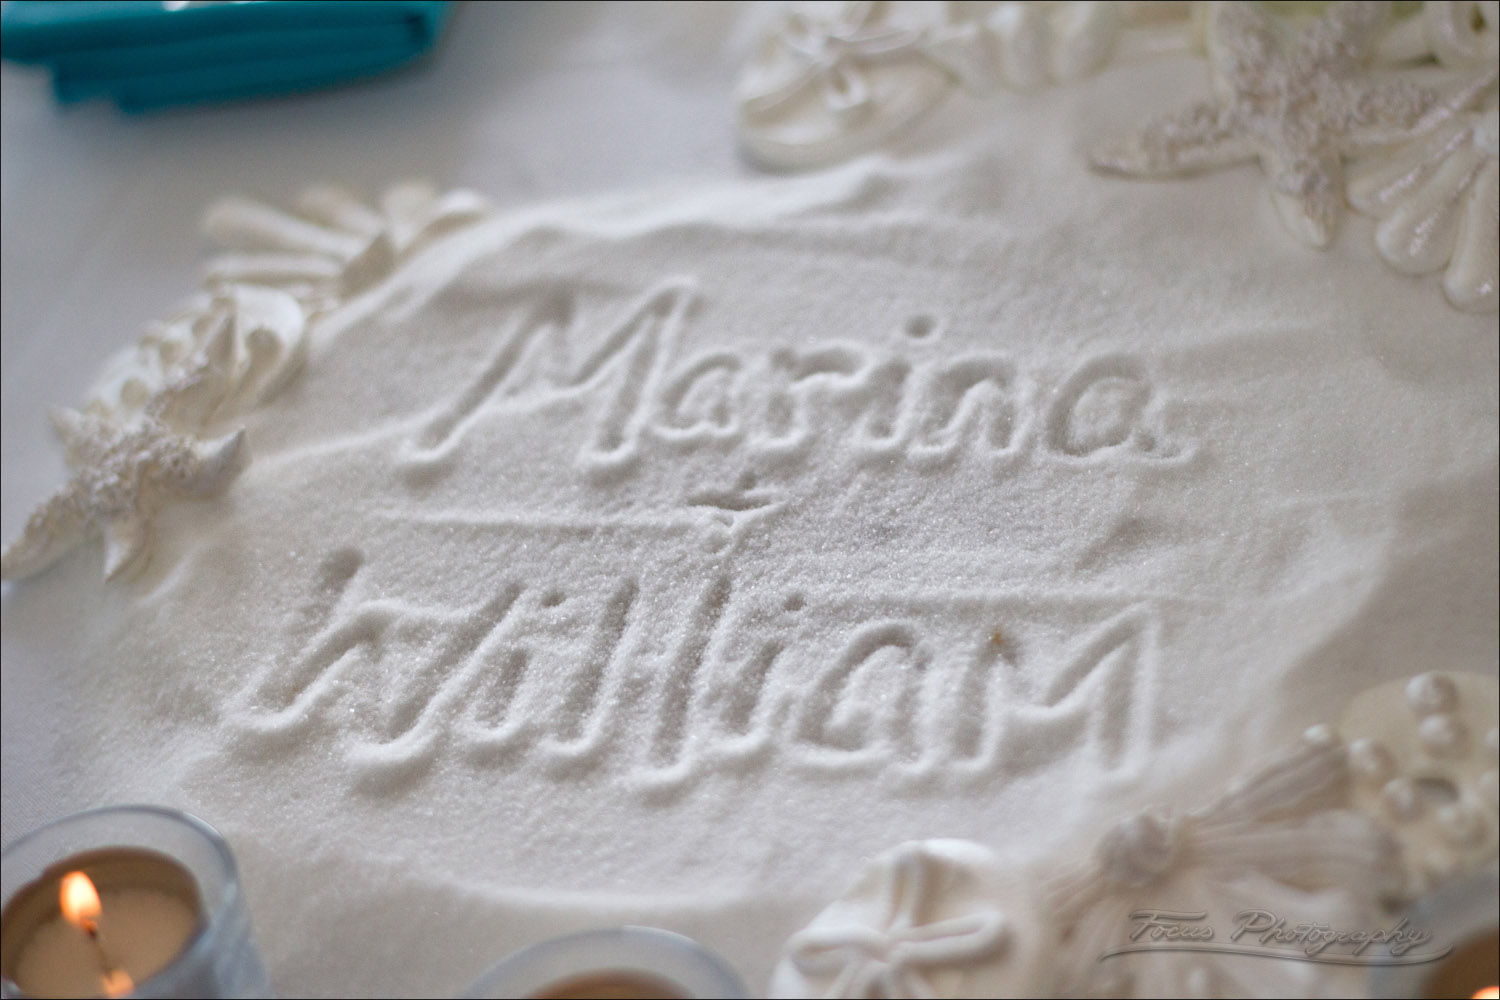 sugar laid as sand in front of wedding cake